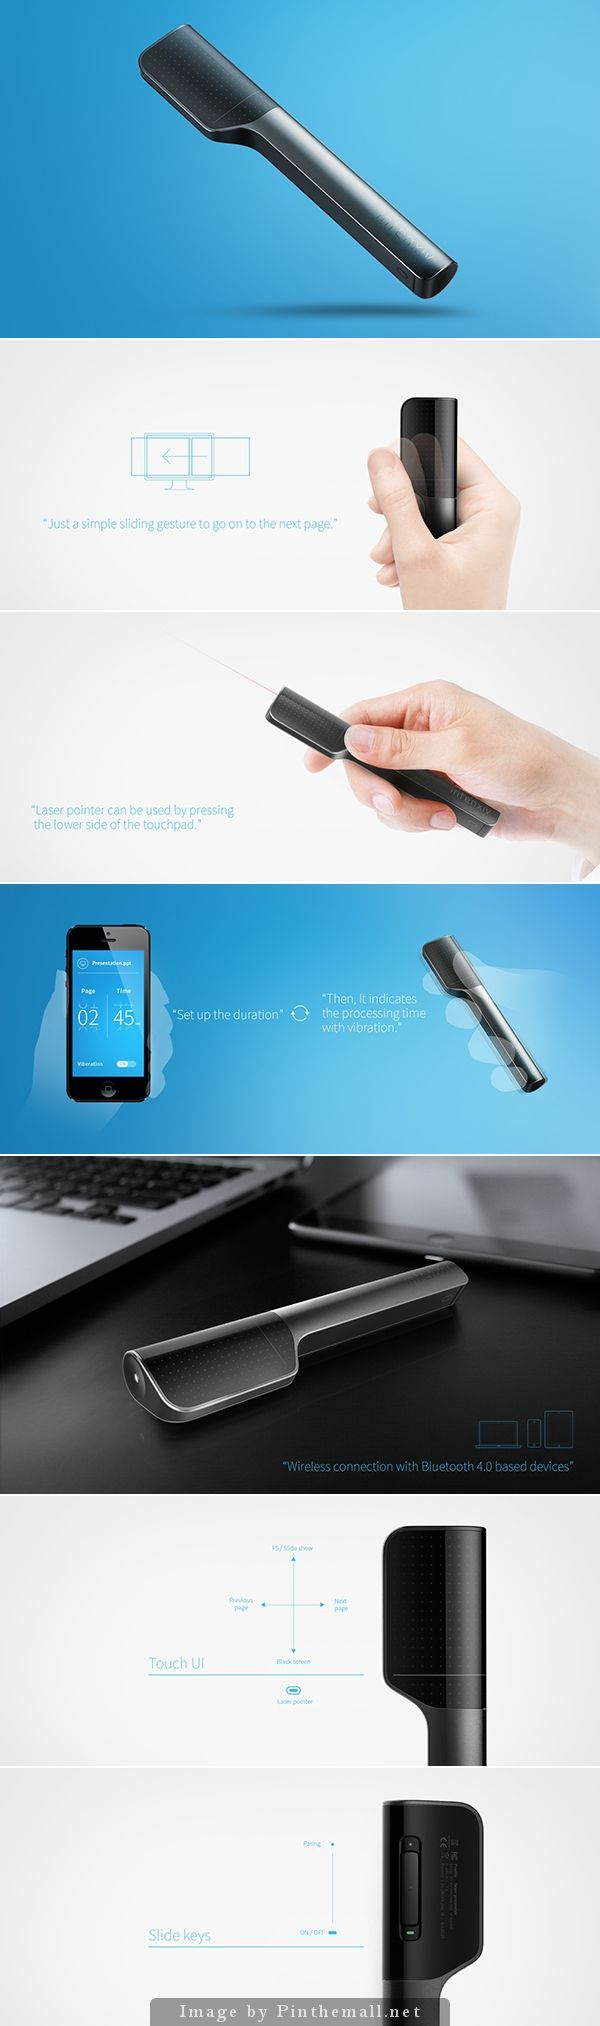 I MUST HAVE IT: Bluetooth presenter - by intenxiv Inc. | A Bluetooth based device to manage presentation conveniently and effectively.